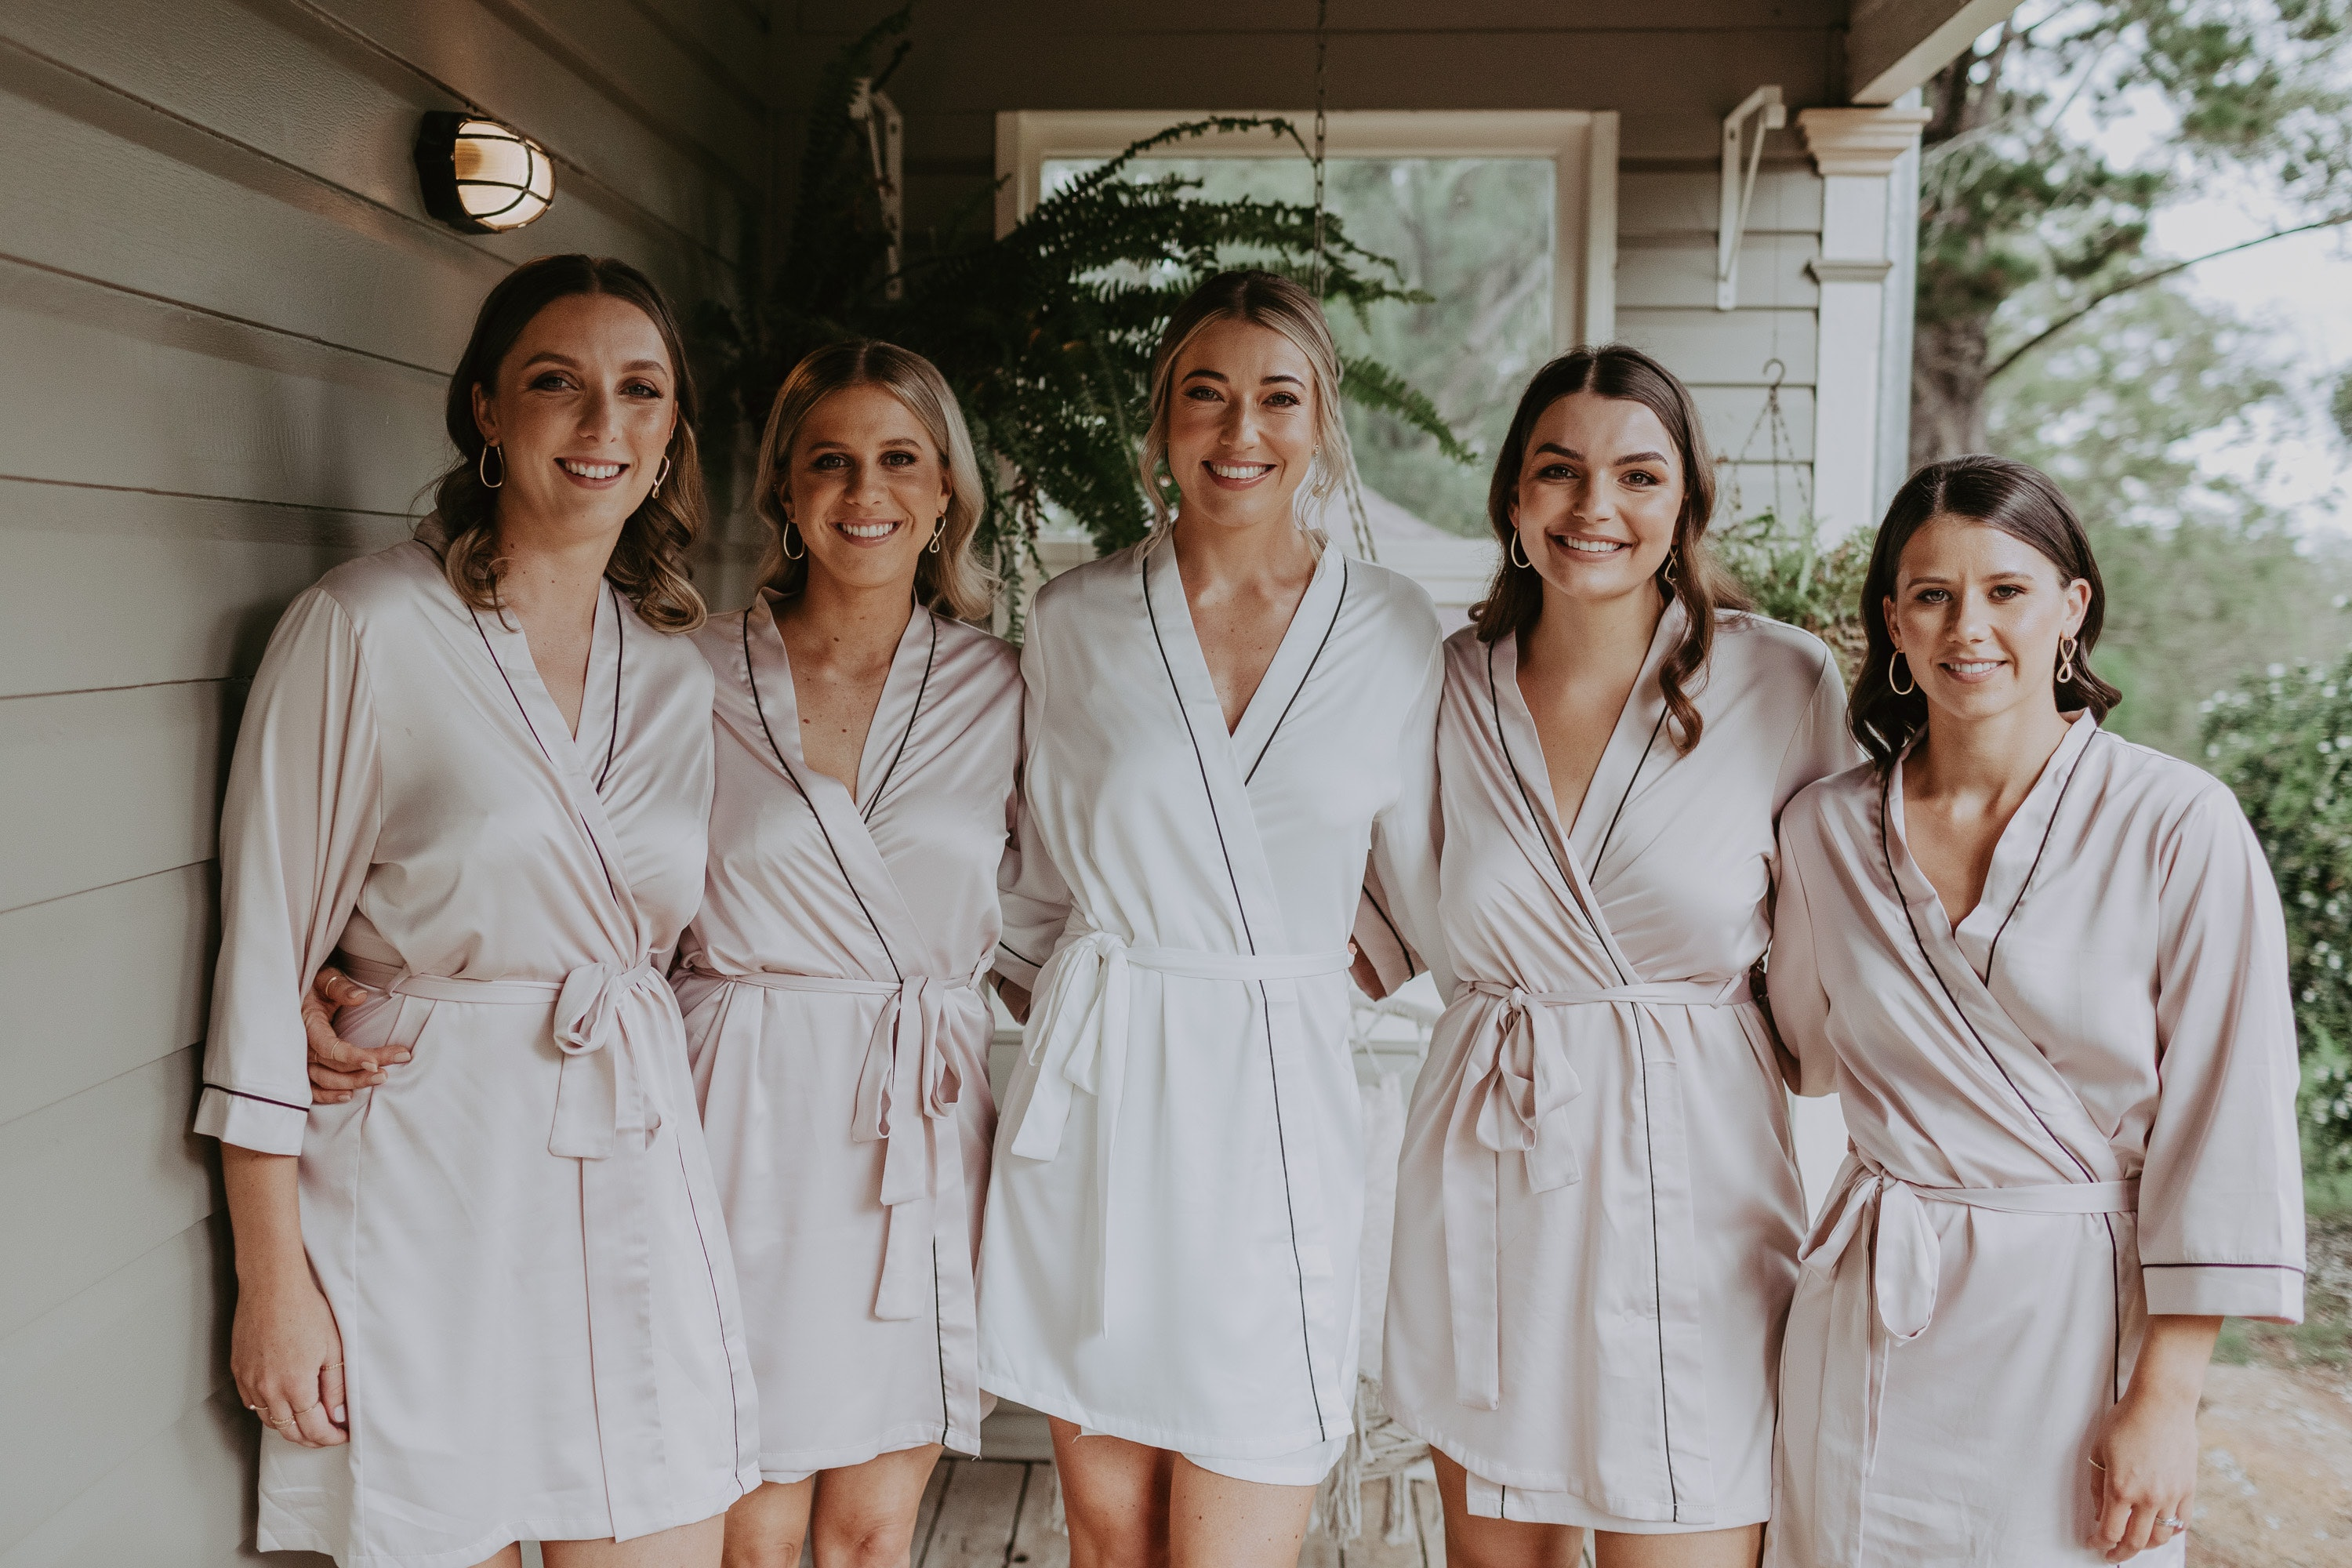 Bride and Bridesmaids standing together